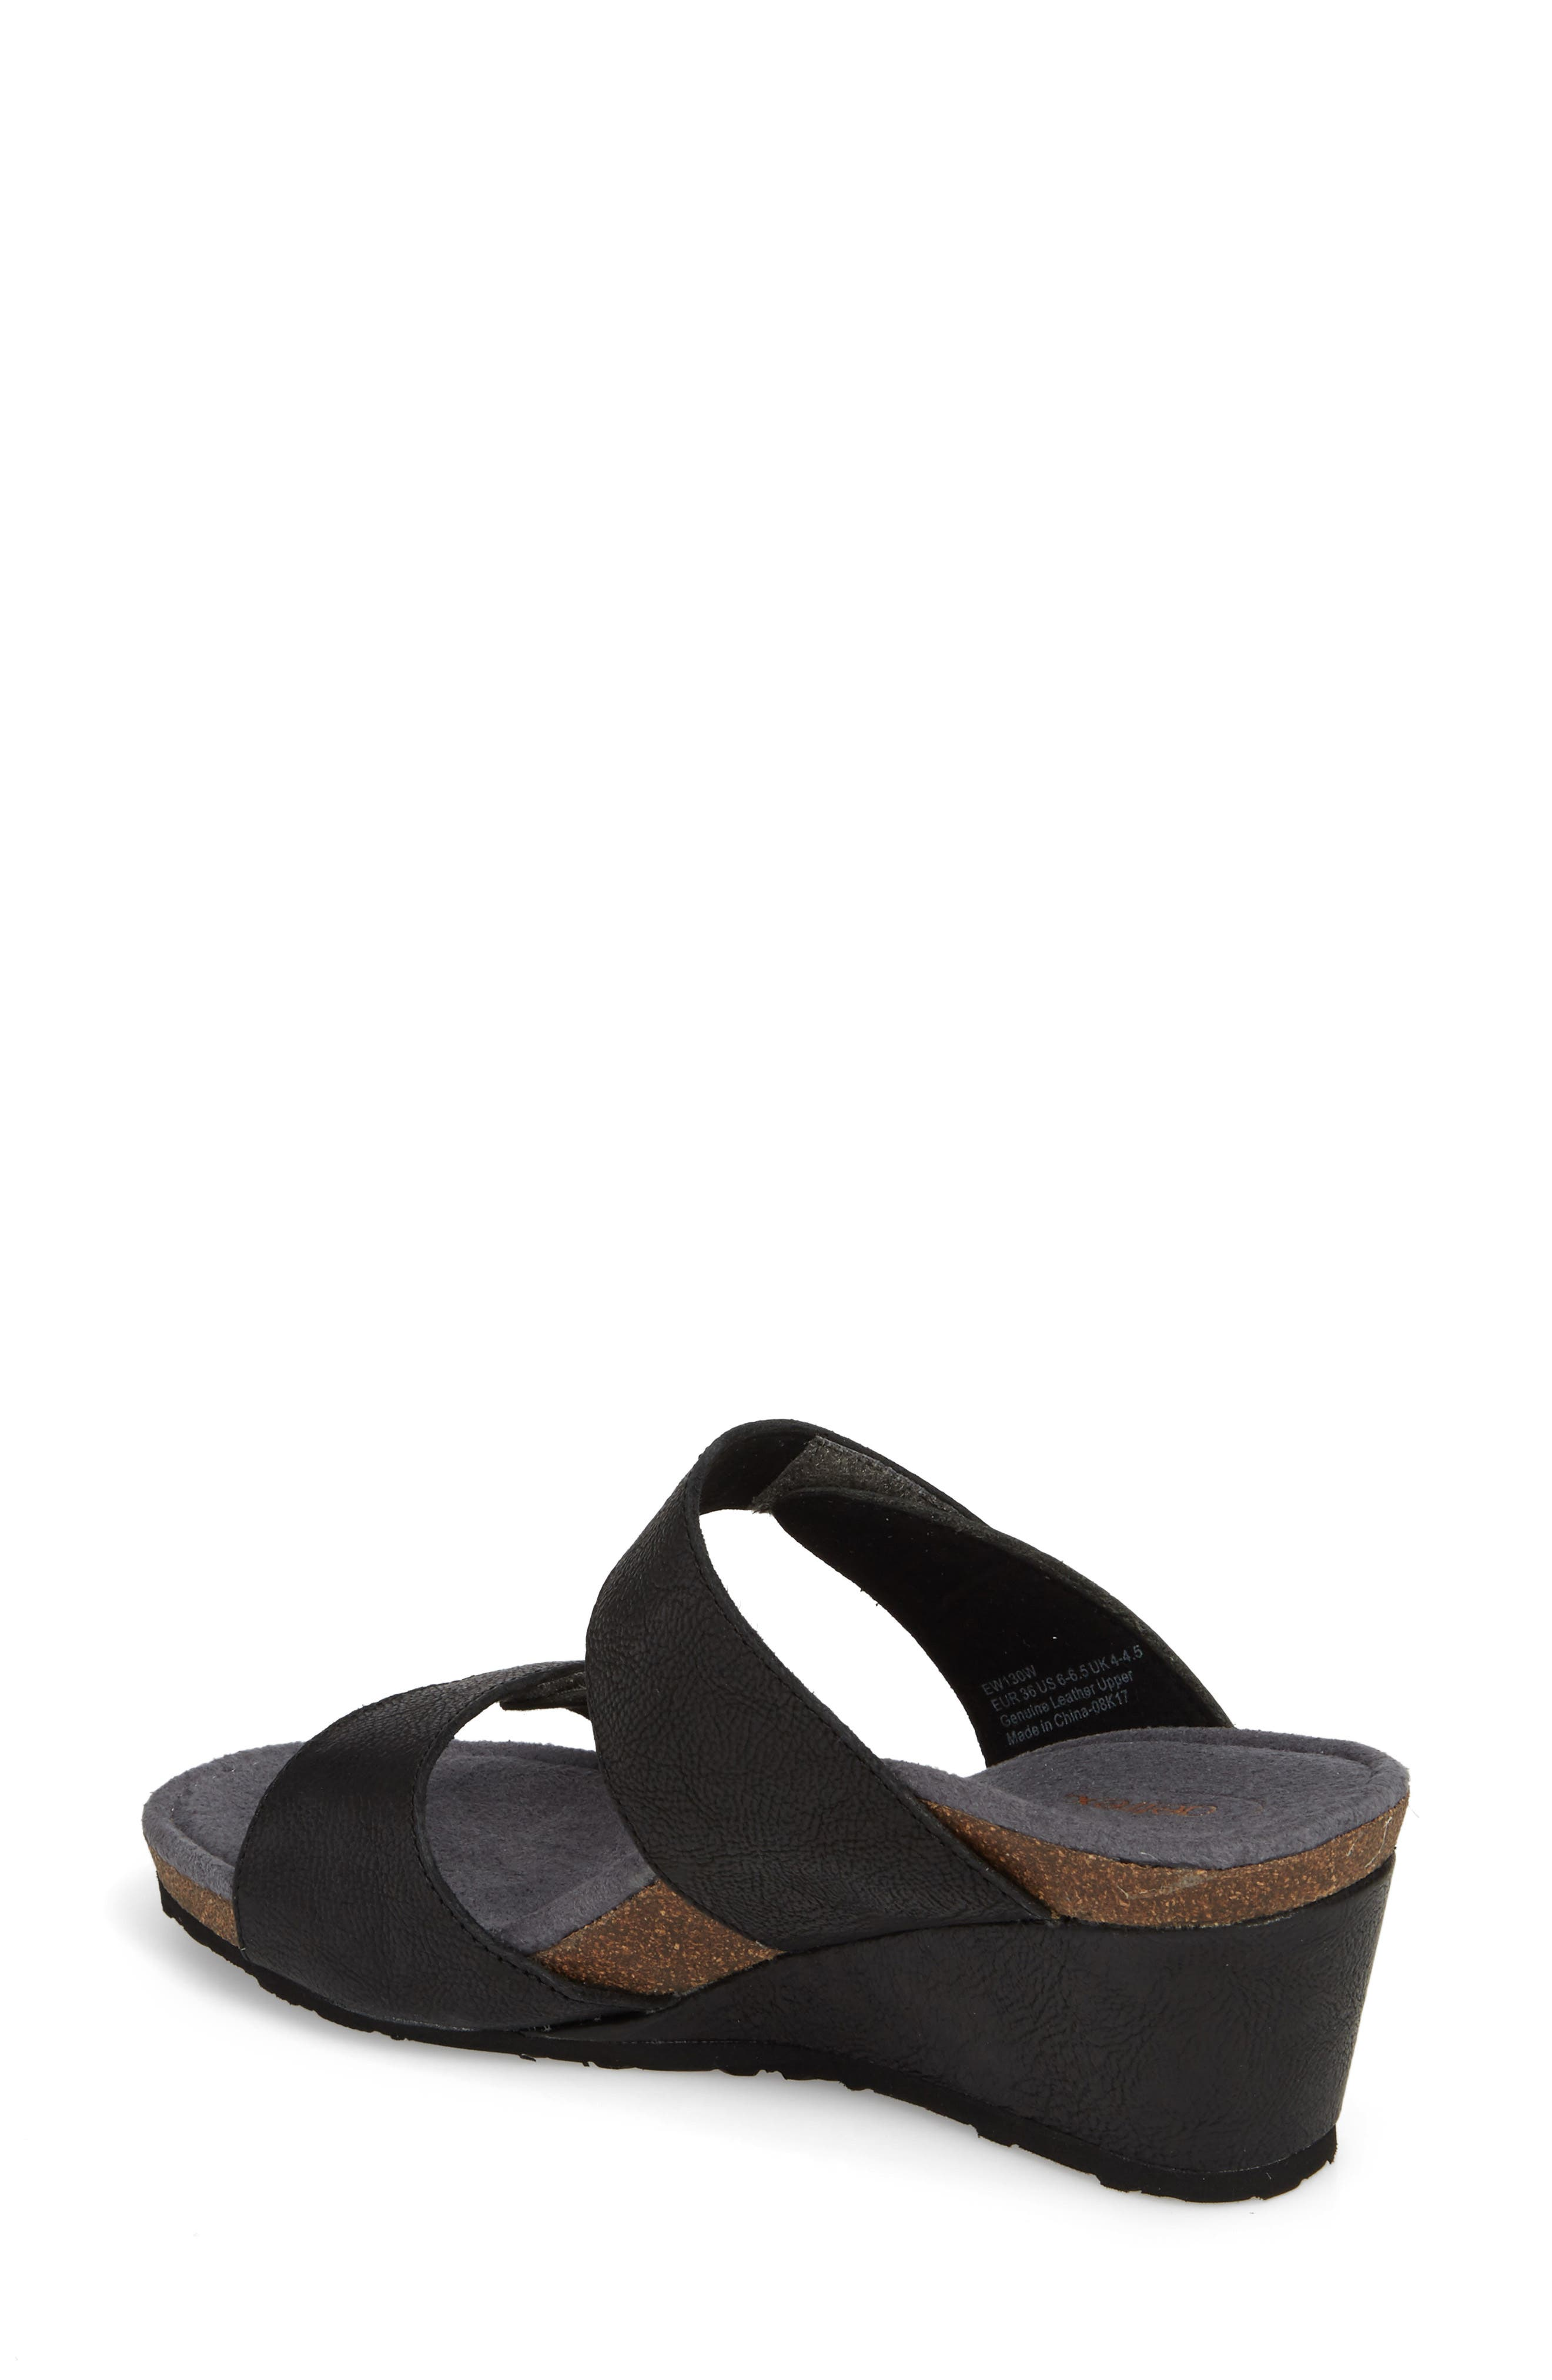 Chantel Wedge Sandal,                             Alternate thumbnail 2, color,                             Black Leather